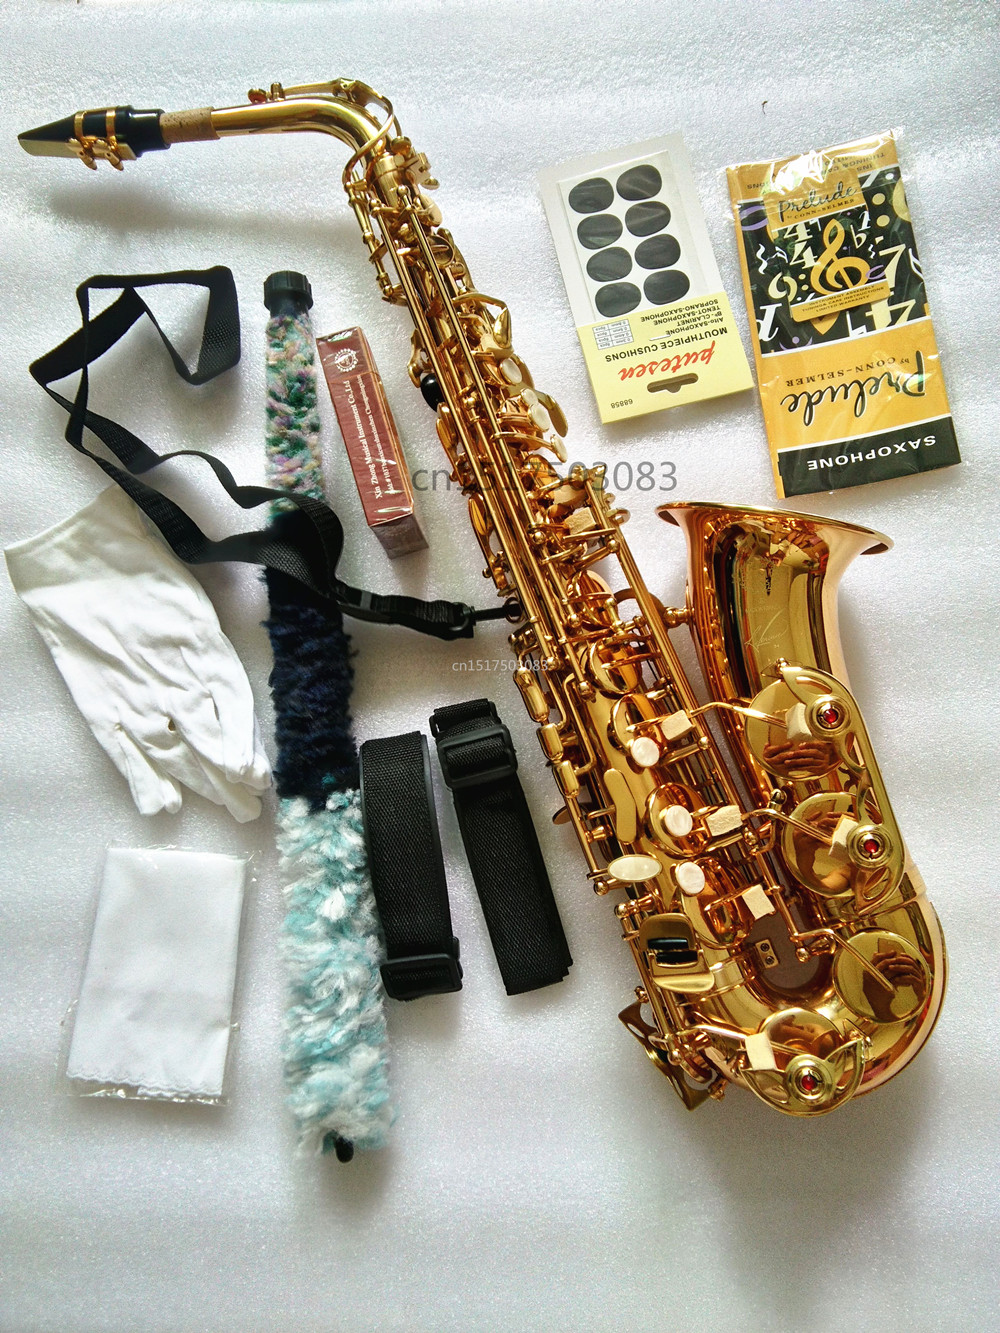 New Brand Alto saxophone musical instrument Real high quality SELMER 54 saxophone profissional Reference Electrophoresis gold new arrival screw nut plug saxophone trumpet erhu musical woodwind instrument microphone prevent mechanical noise for helicopter